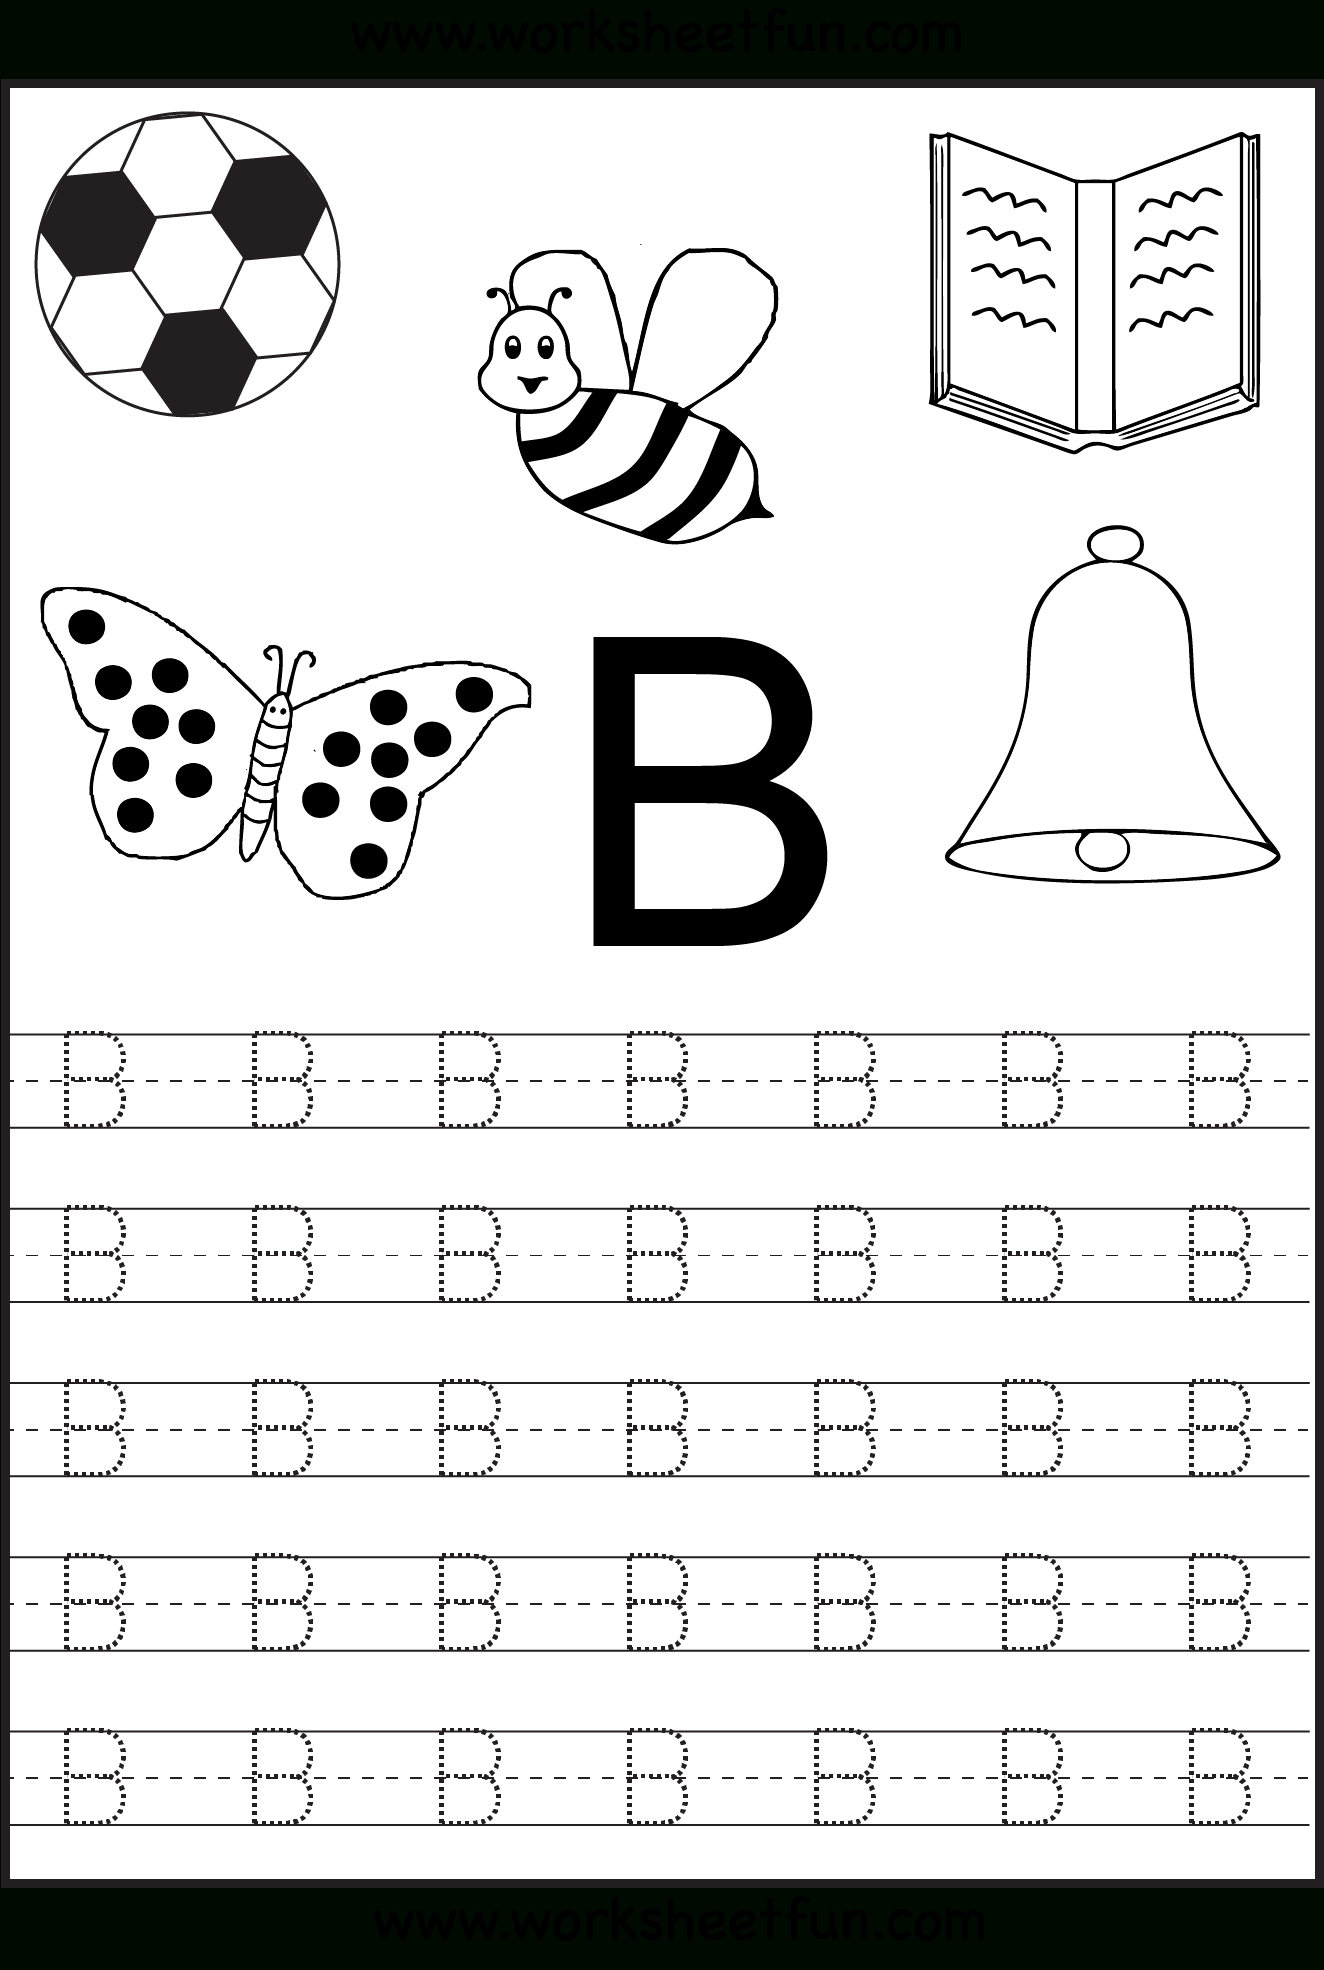 Free Printable Letter Tracing Worksheets For Kindergarten – 26   Printable Worksheets For Preschoolers The Alphabets